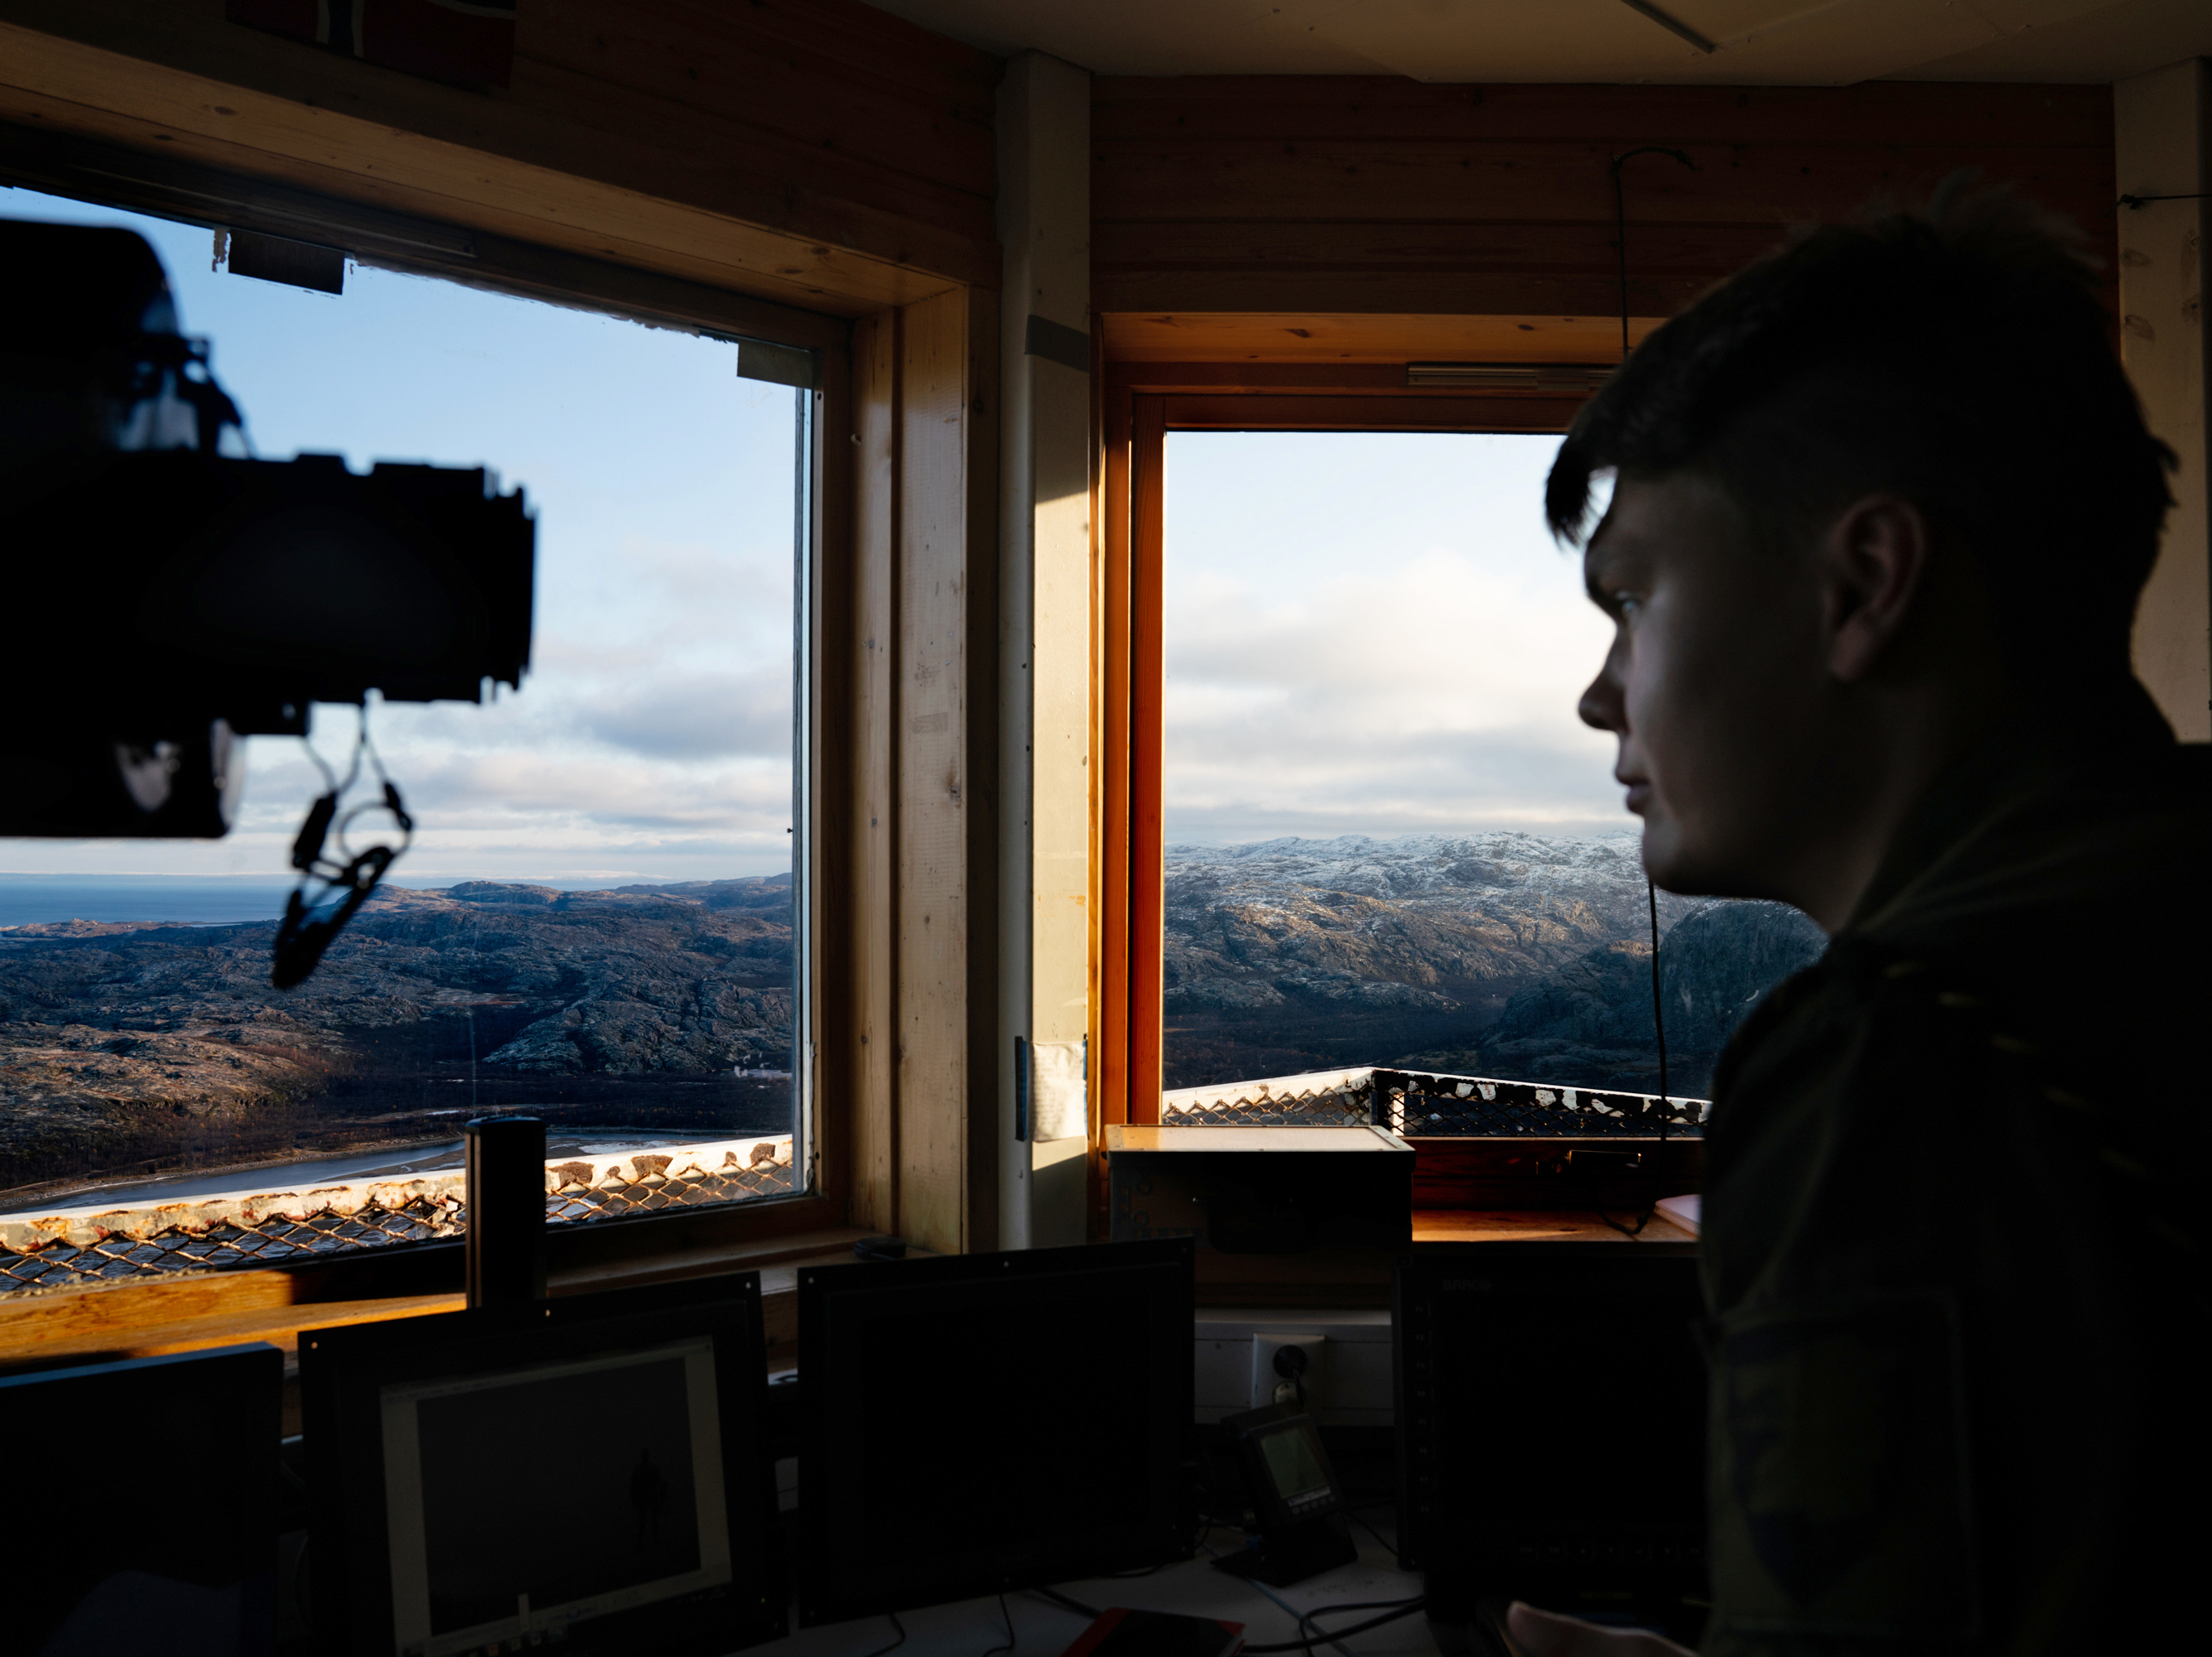 In A Remote Arctic Outpost, Norway Keeps Watch On Russia's